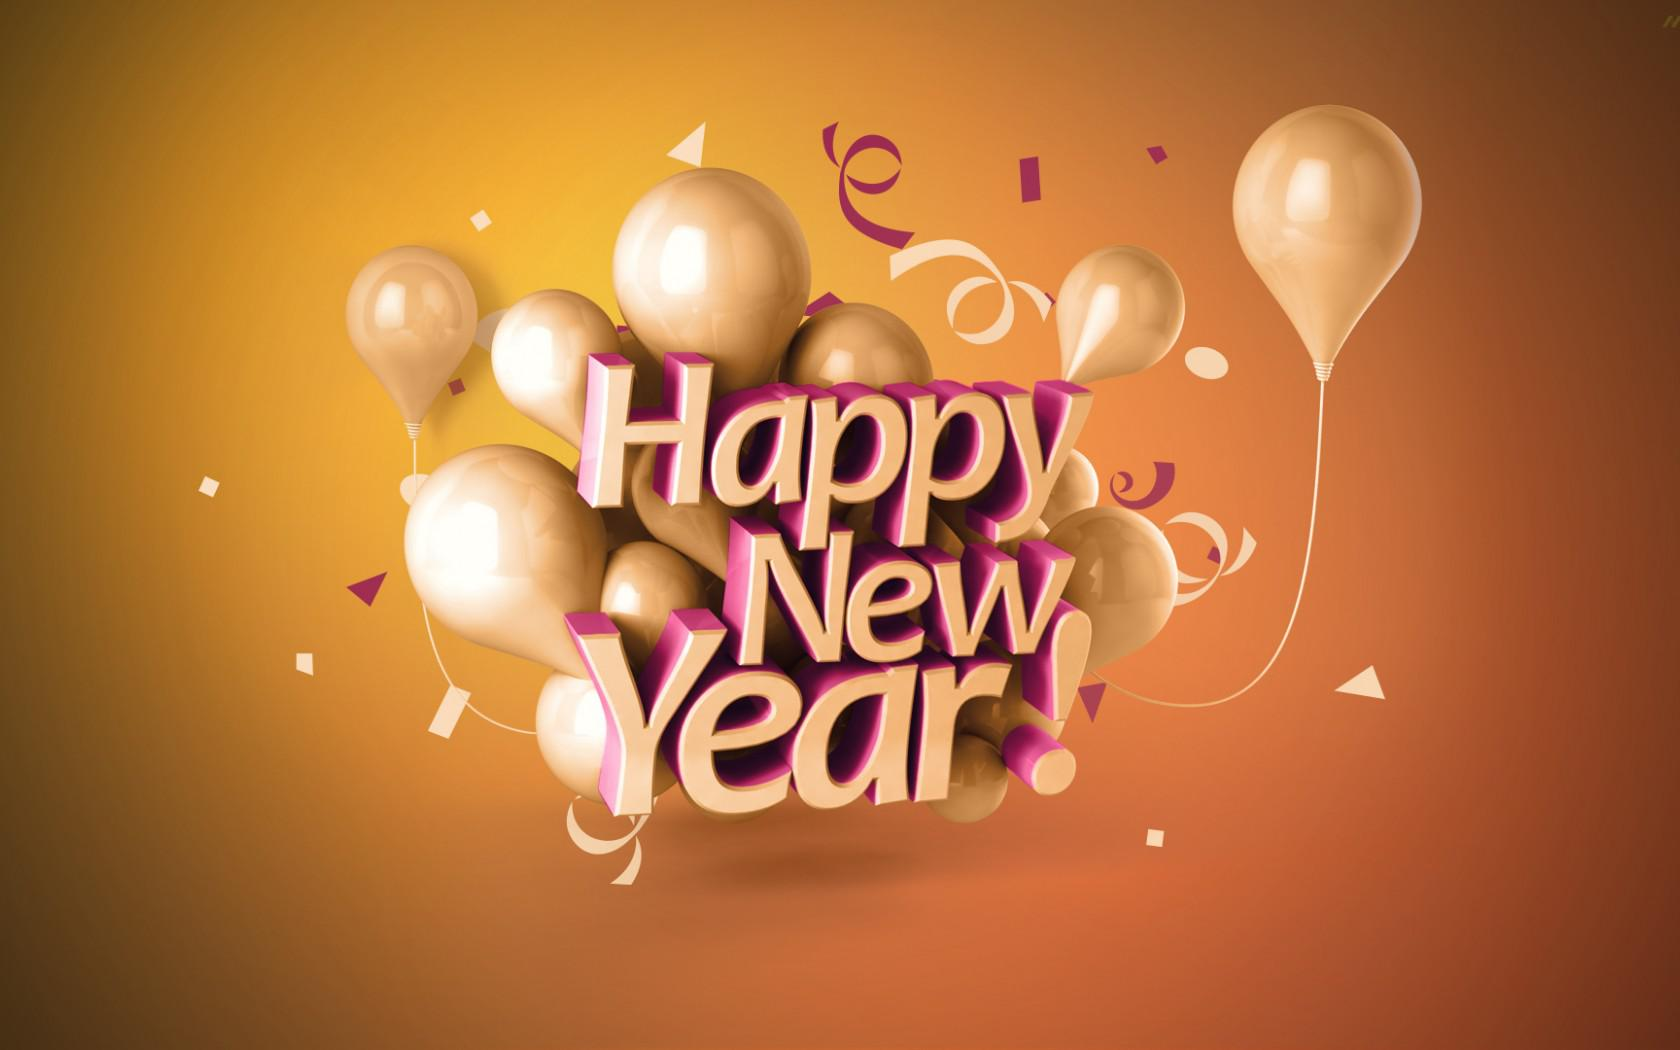 Happy-New-Year-2016-3D-Wallpapers-Download-Free-1